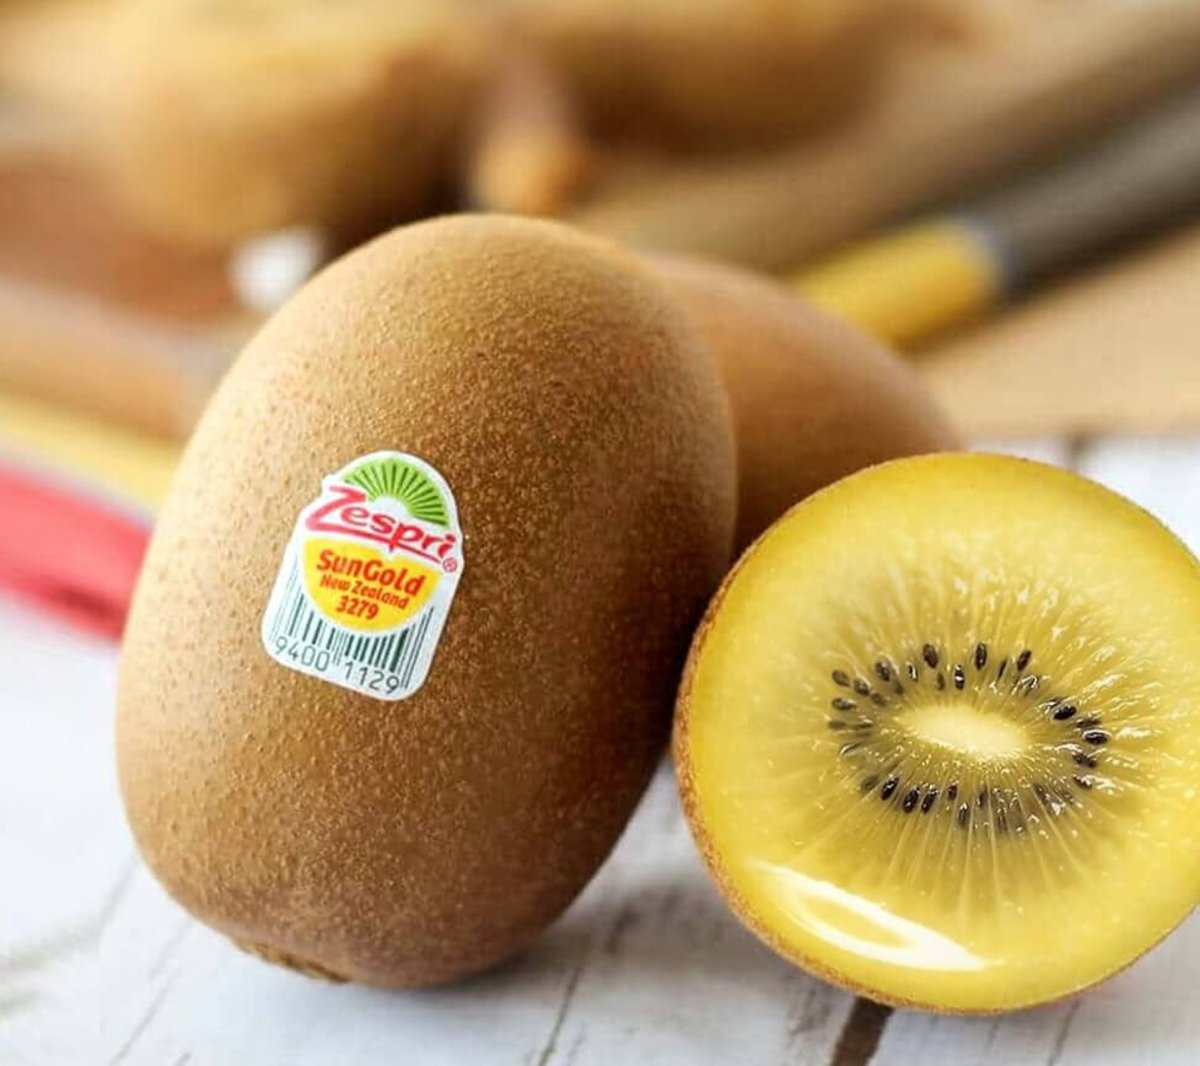 New Zealand Zespri Sun Gold Kiwifruit (6pc / 600-800g approx.)